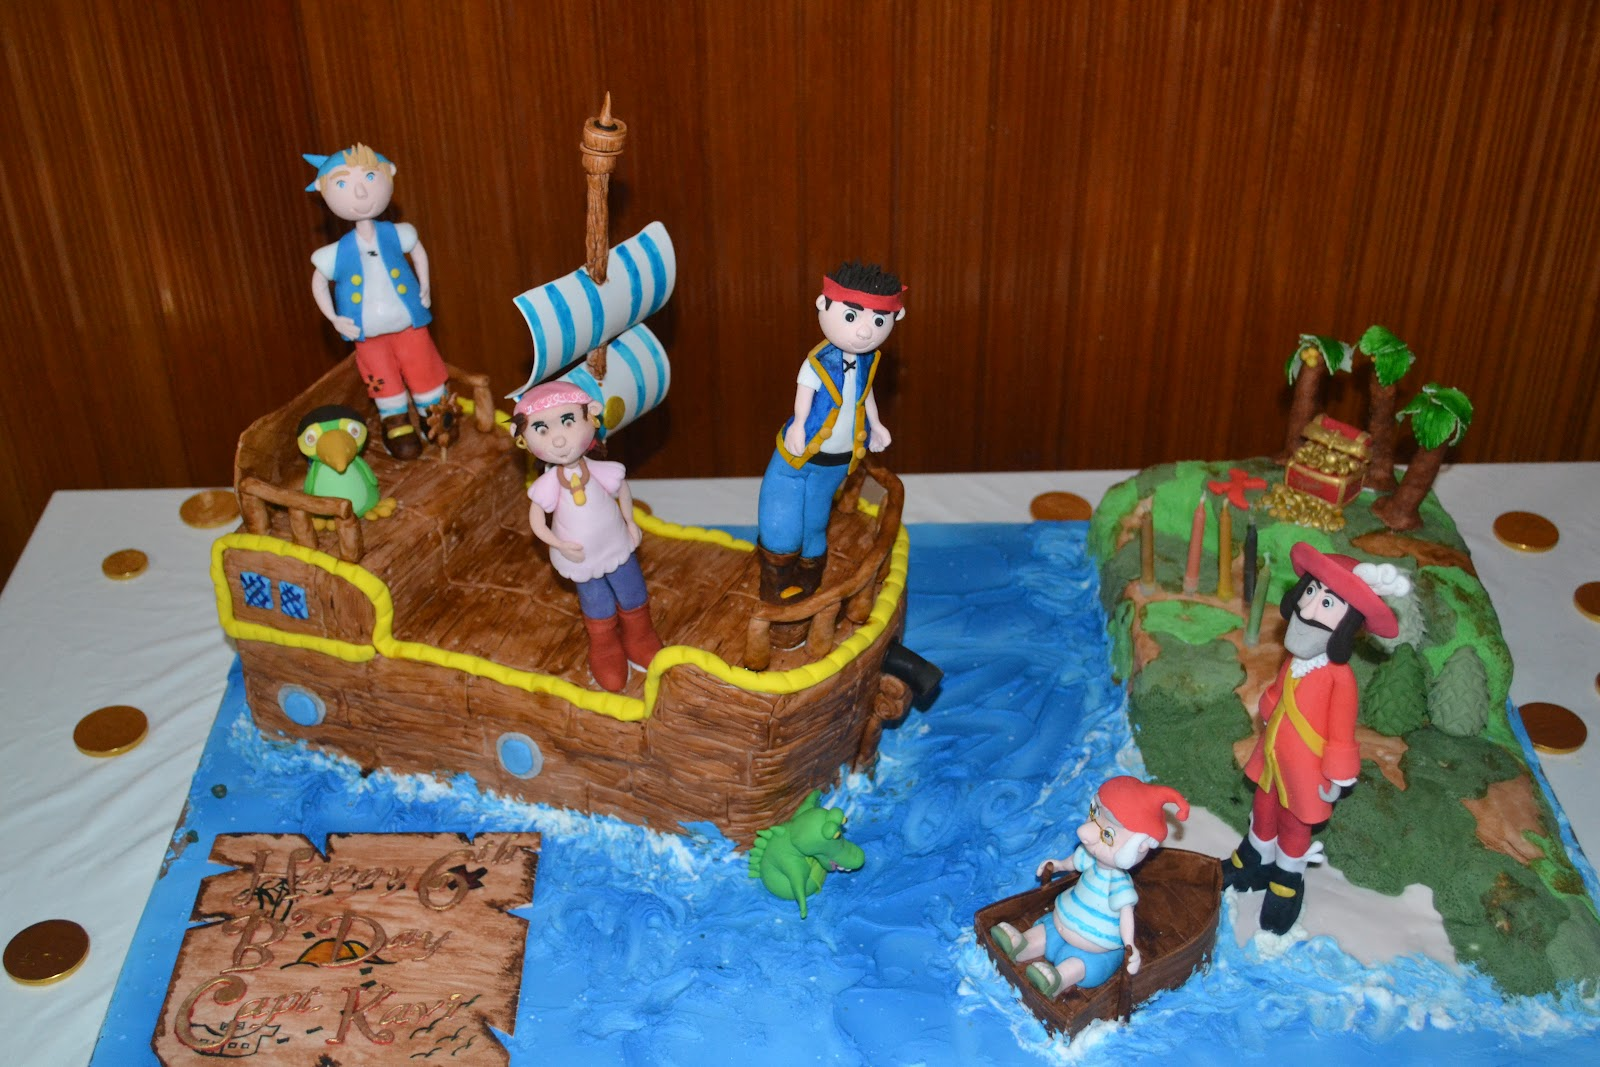 Cakes Cakes N More Jake And The Neverland Pirates Birthday Party